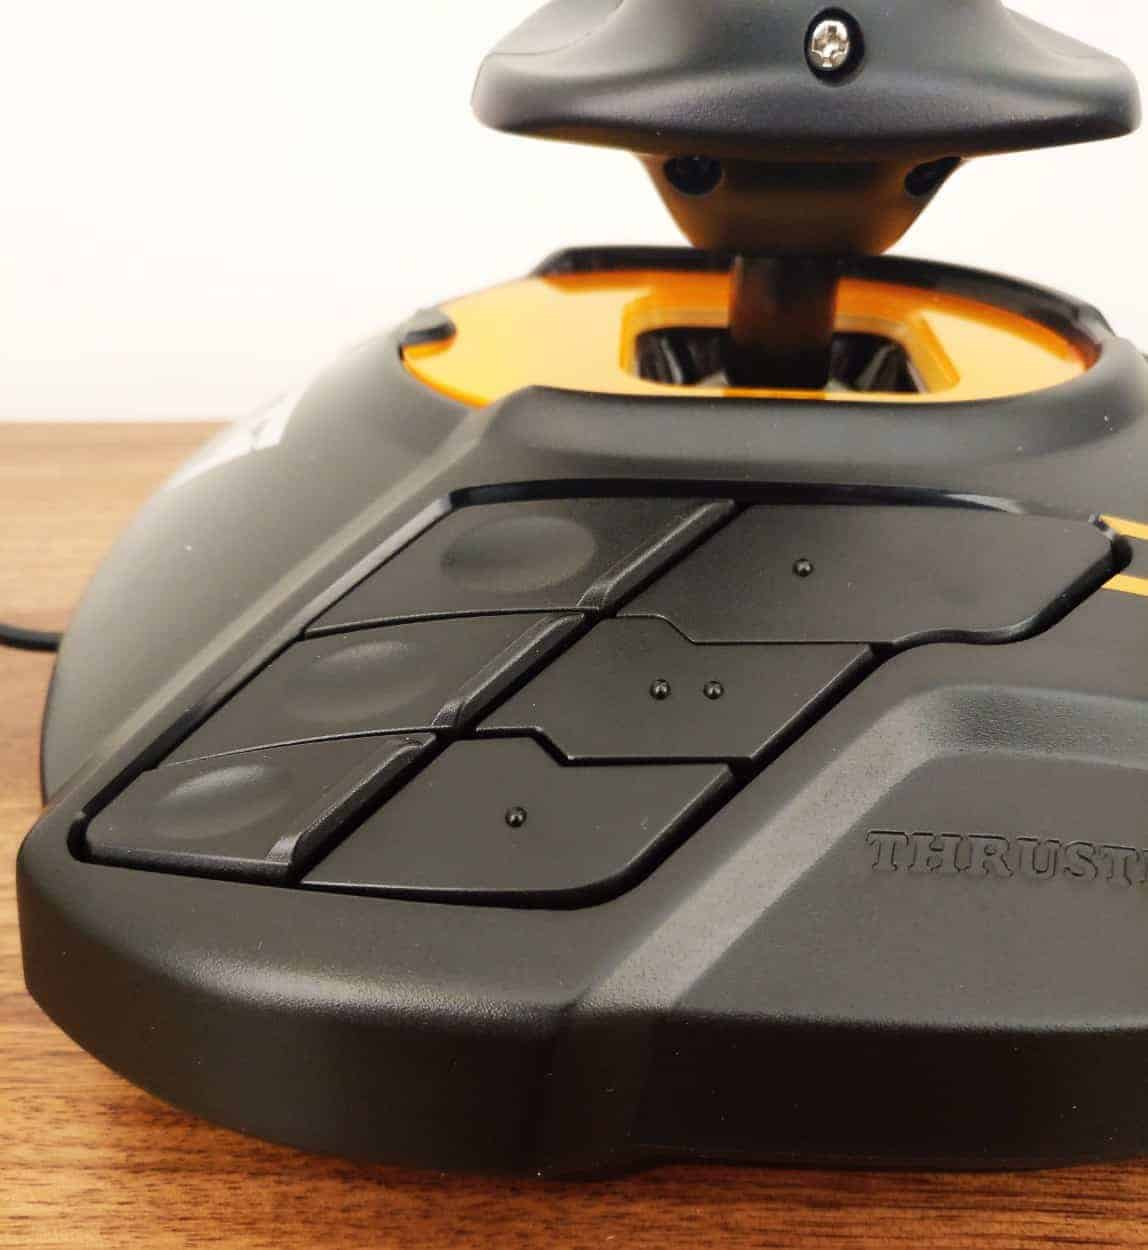 Thrustmaster-Flightstick-Photos30 Thrustmaster T.16000M FCS Hotas Joystick Review